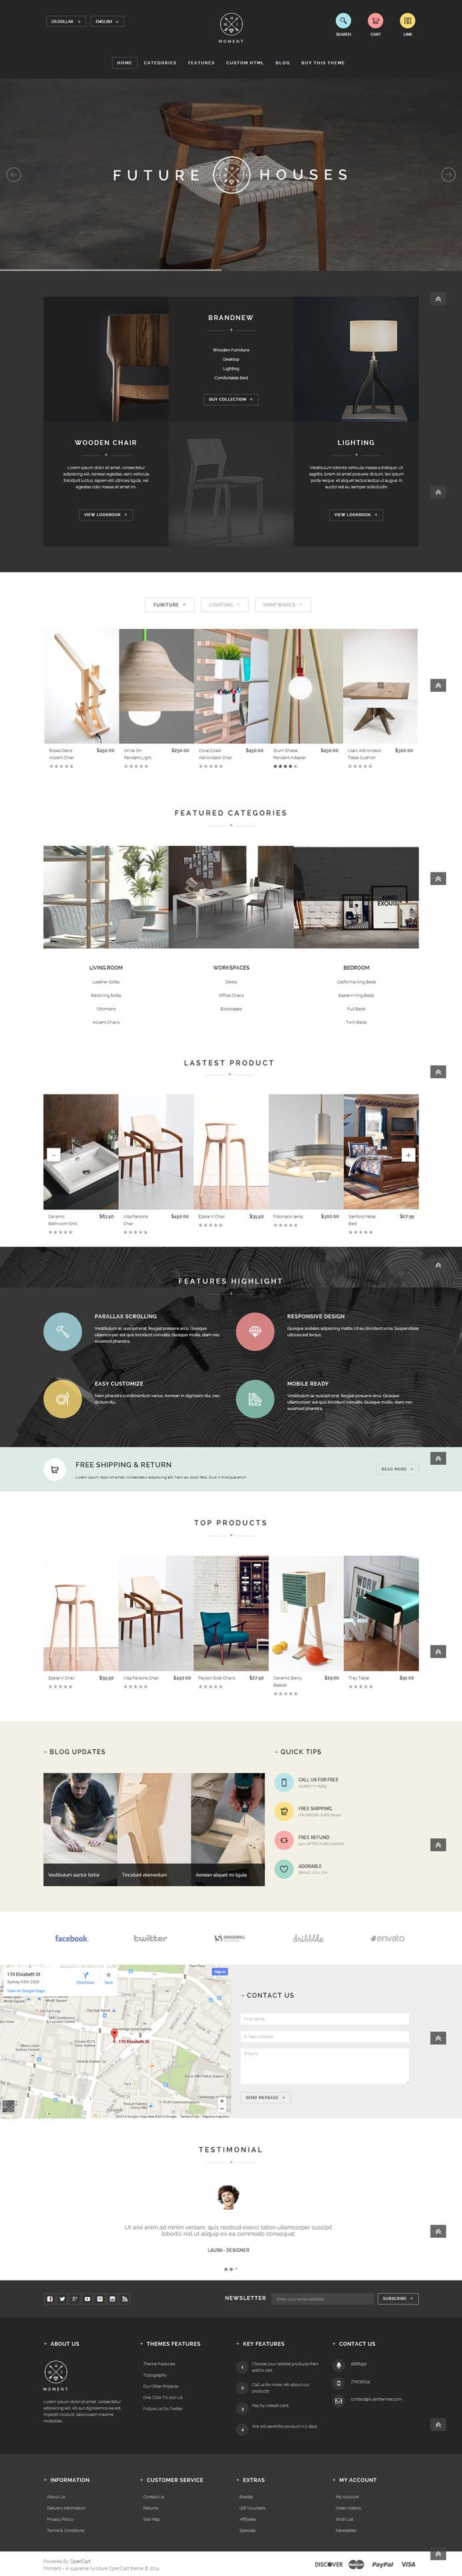 Web Design / furniture, minimal, minimalist, clean, website, dark more on http://html5themes.org